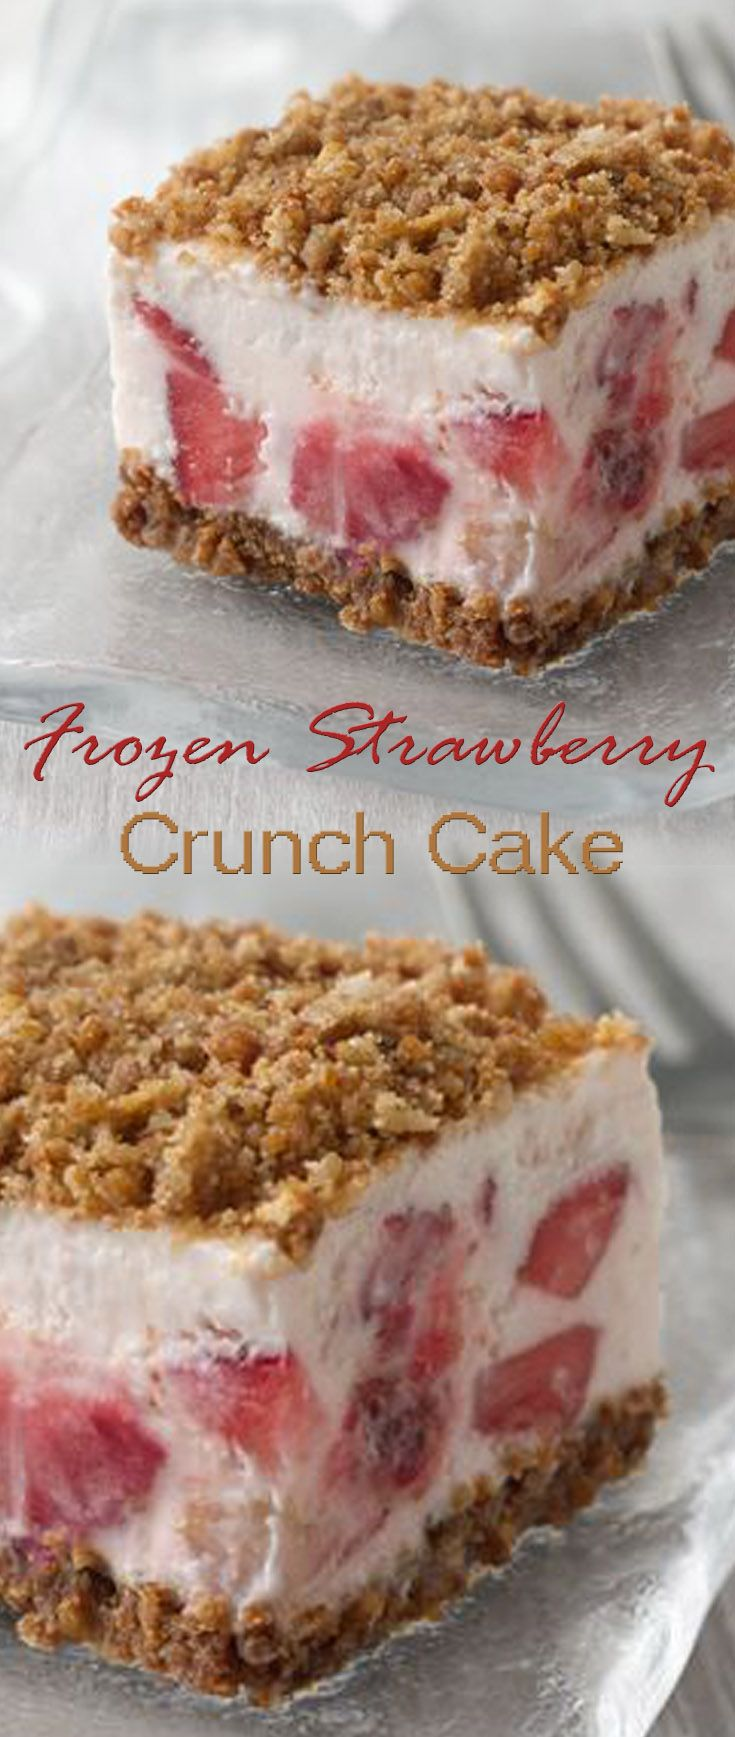 My Frozen Strawberry Crunch Cake                                                                                                                                                                                 Más